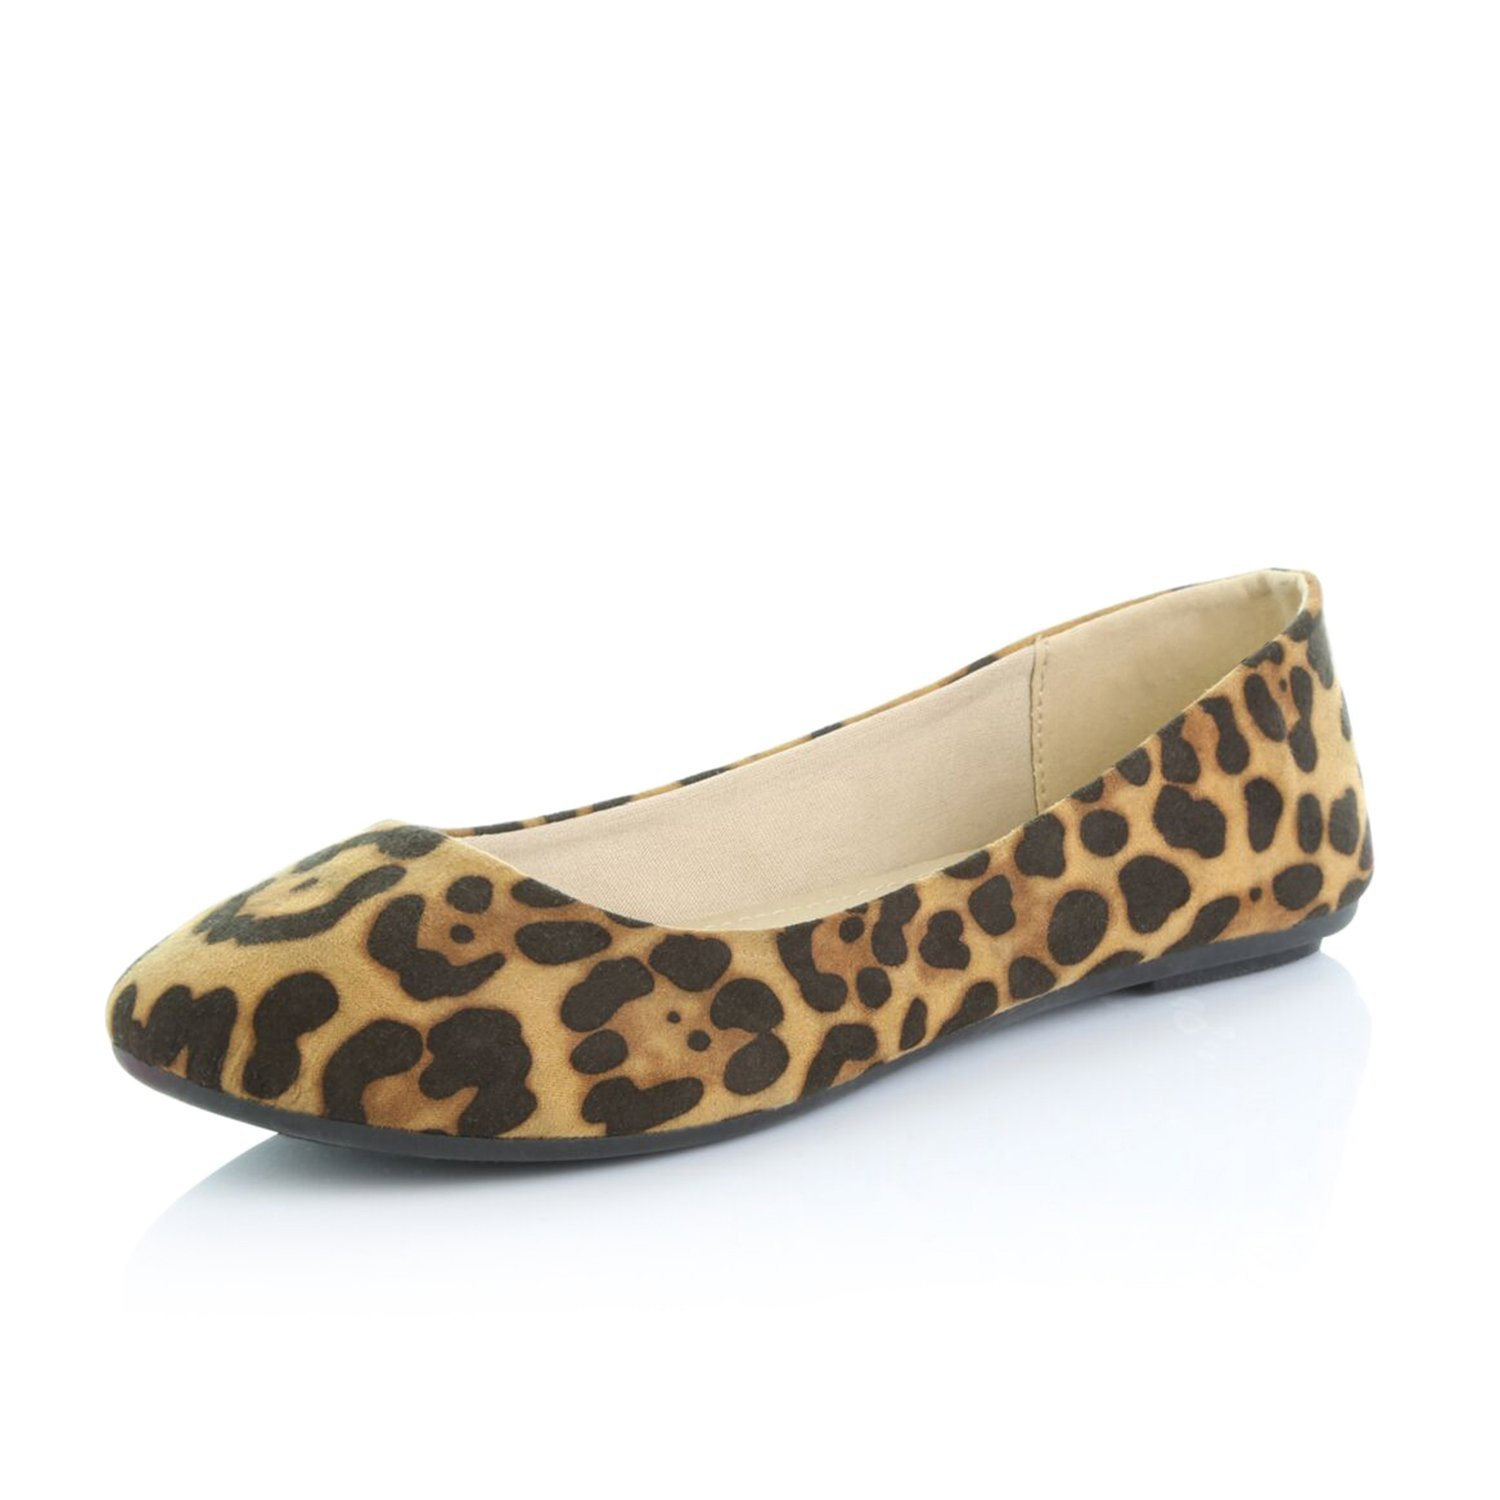 DailyShoes Women's Comfortable Soft Round Flat Slip-On Padded Loafer Casual Shoes, Leopard Suede, 12 B(M) US